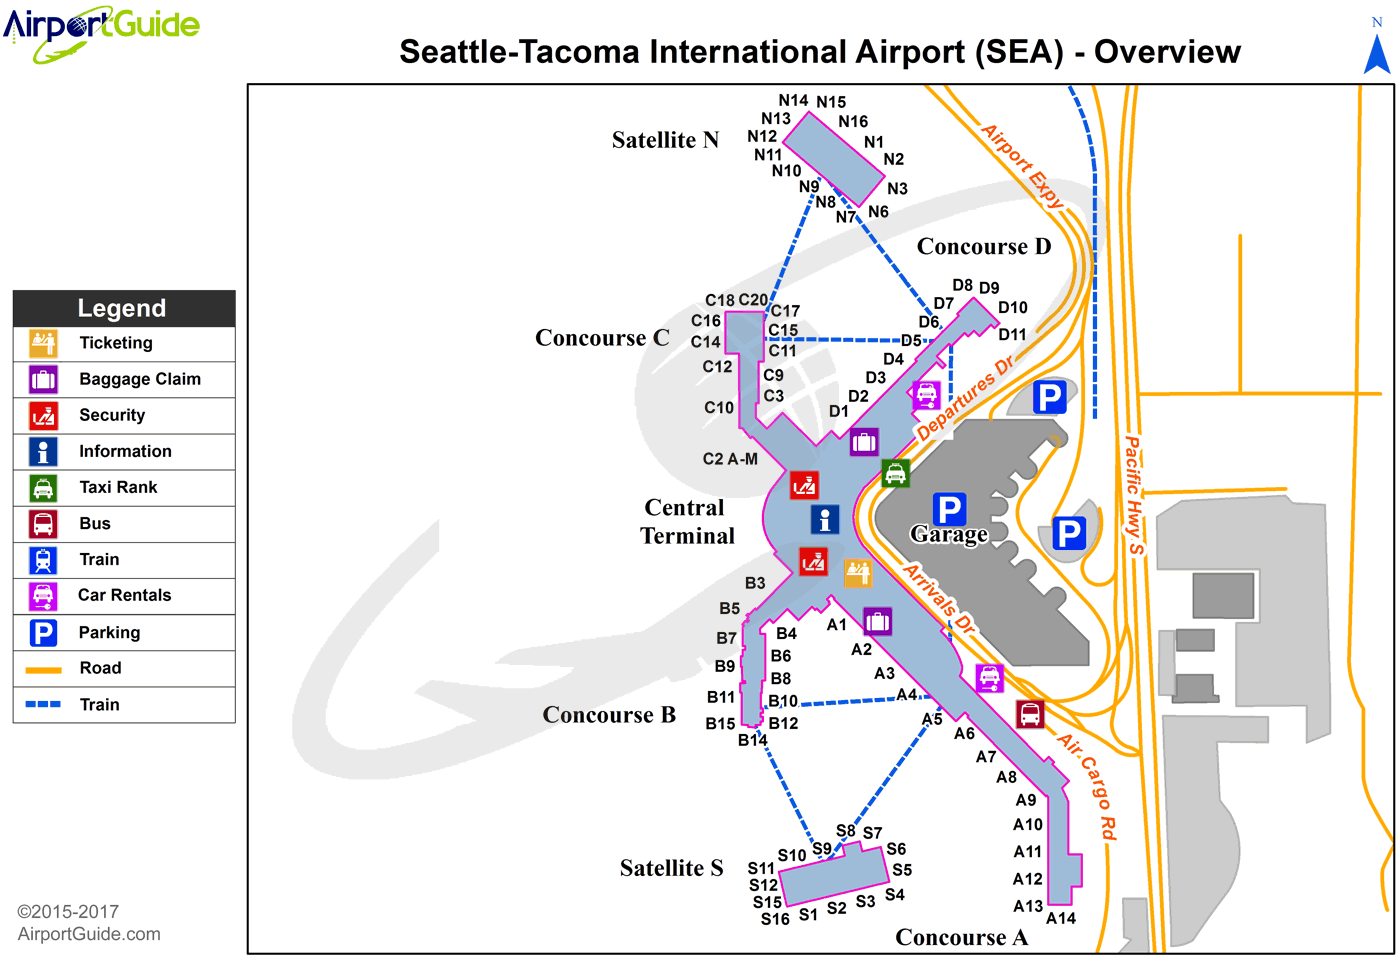 Sea Airport Map Seattle   Seattle Tacoma International (SEA) Airport Terminal Maps